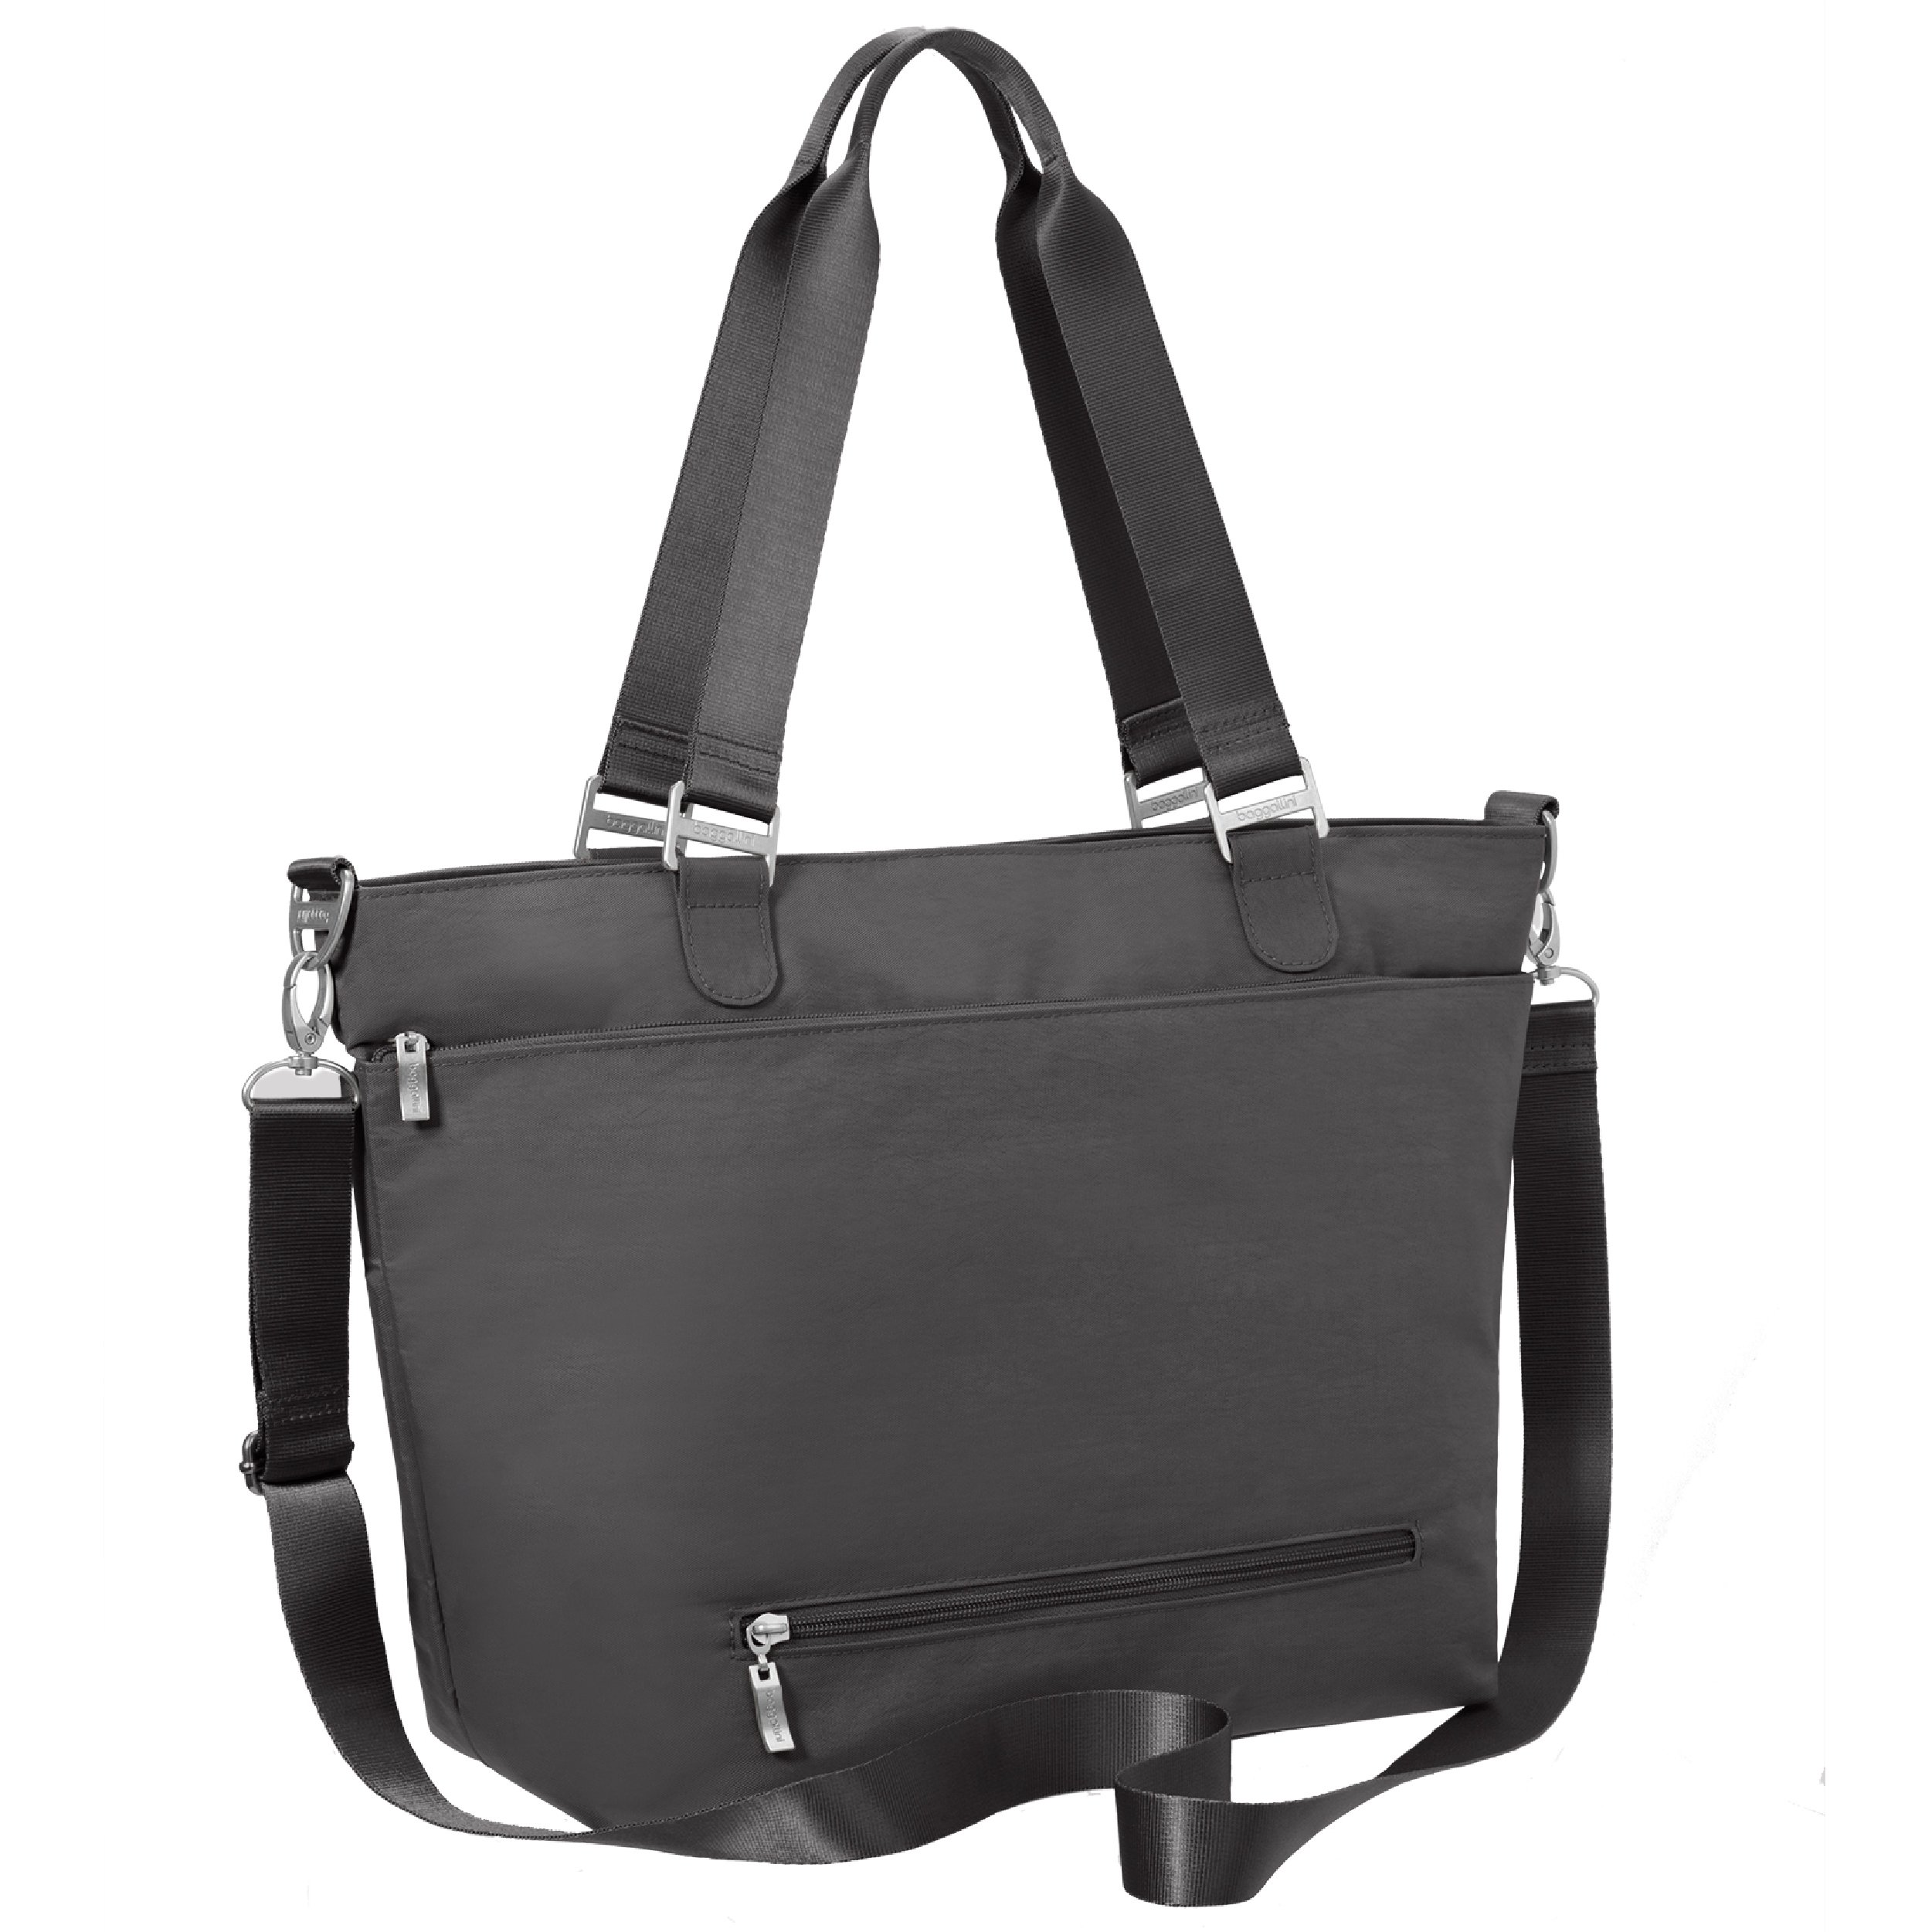 Baggallini Avenue Travel Tote, Charcoal, One Size by Baggallini (Image #7)